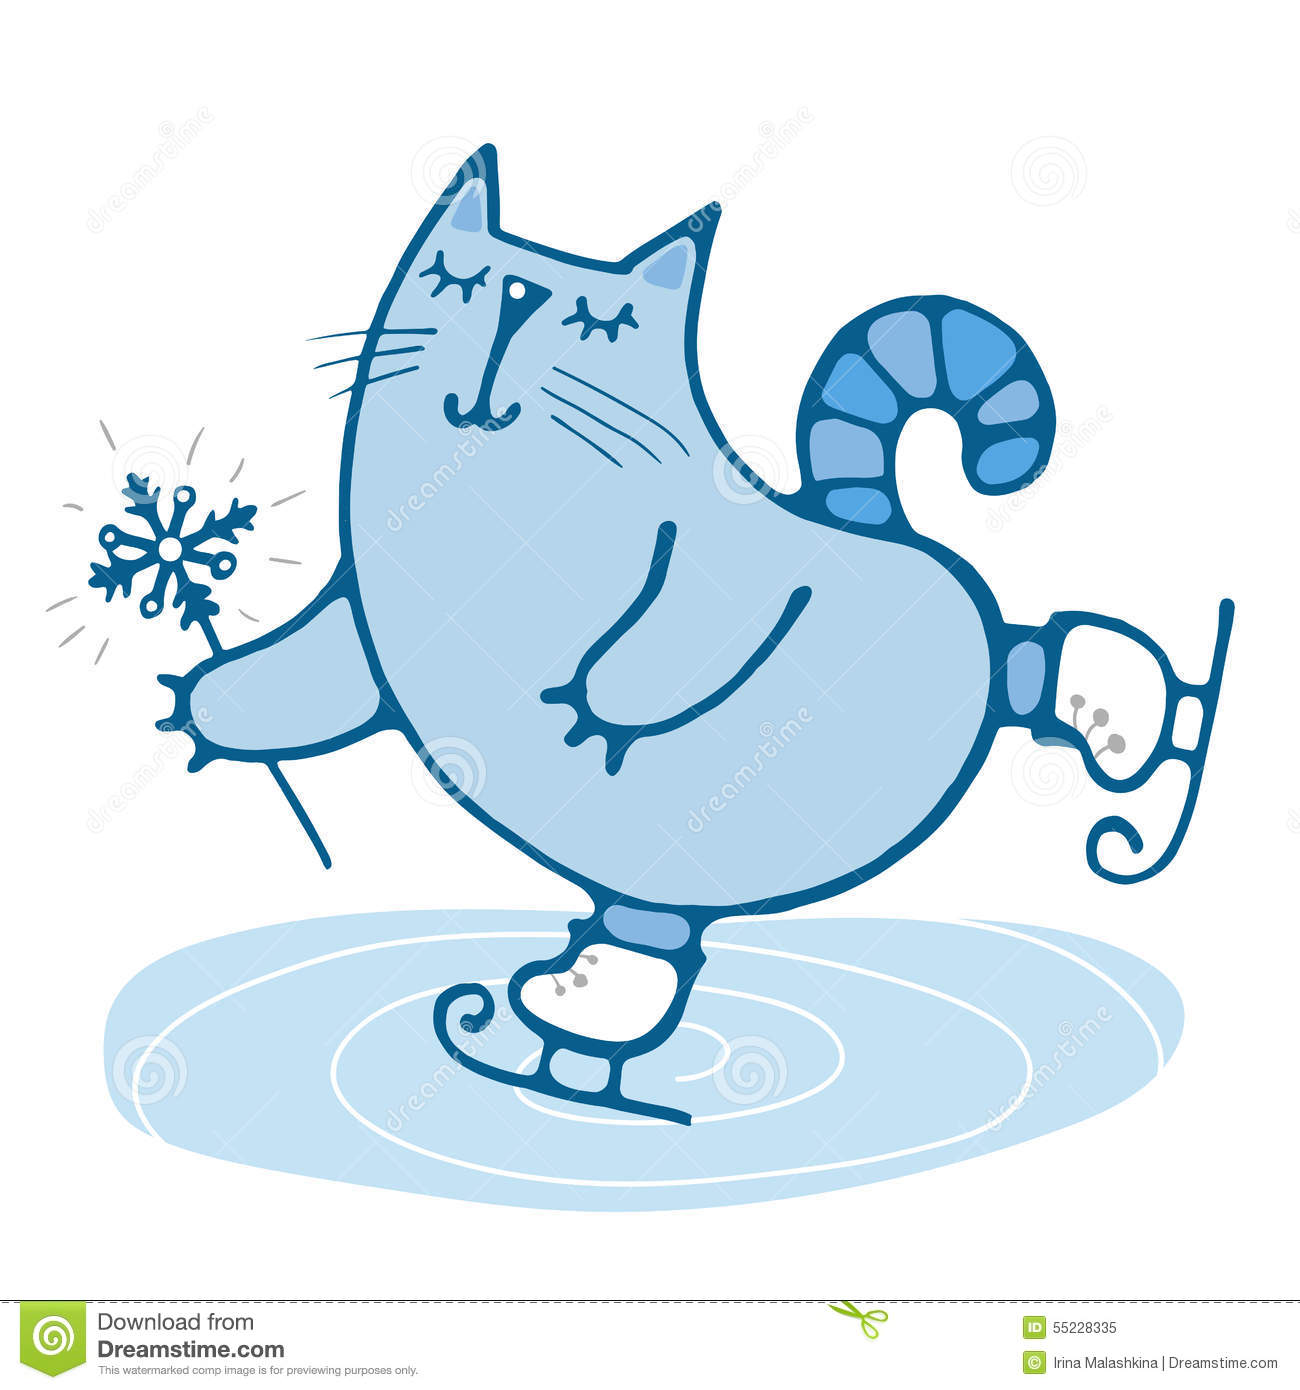 Cute Hand-drawn Cat Skates Stock Vector - Image: 55228335 Raccoon Drawing